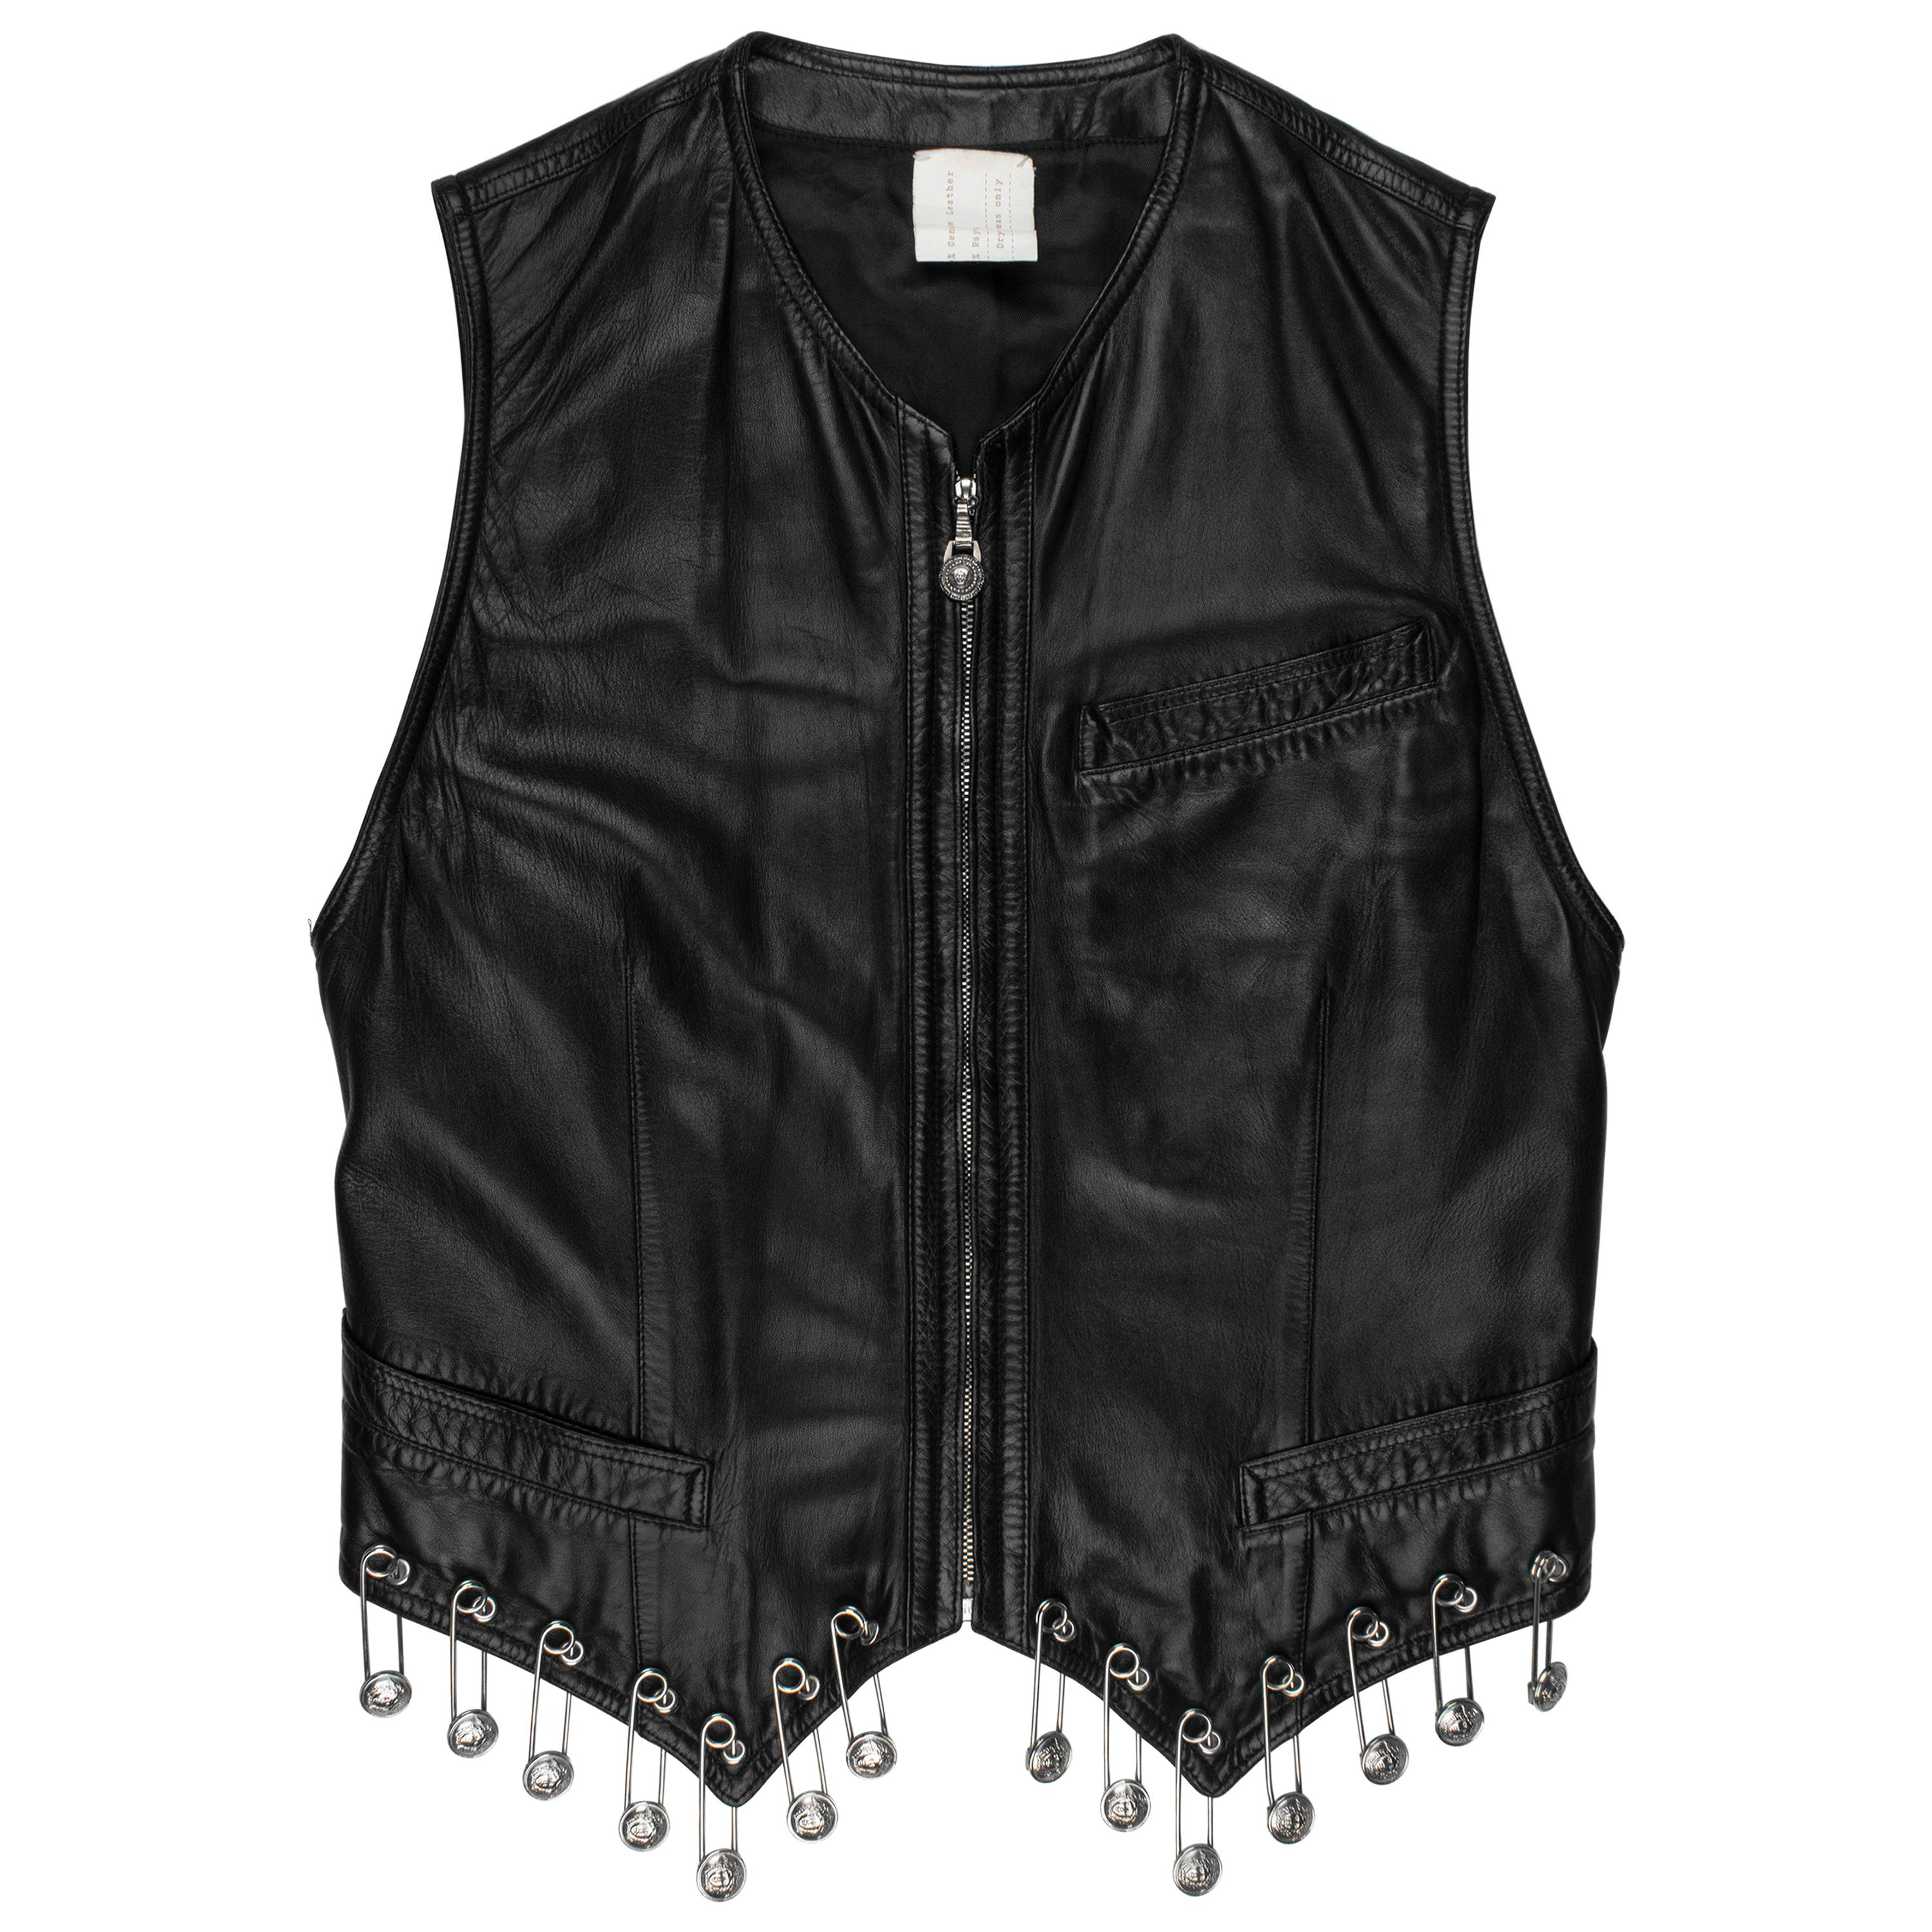 Gianni Versace SS1994 Safety Pin Vest